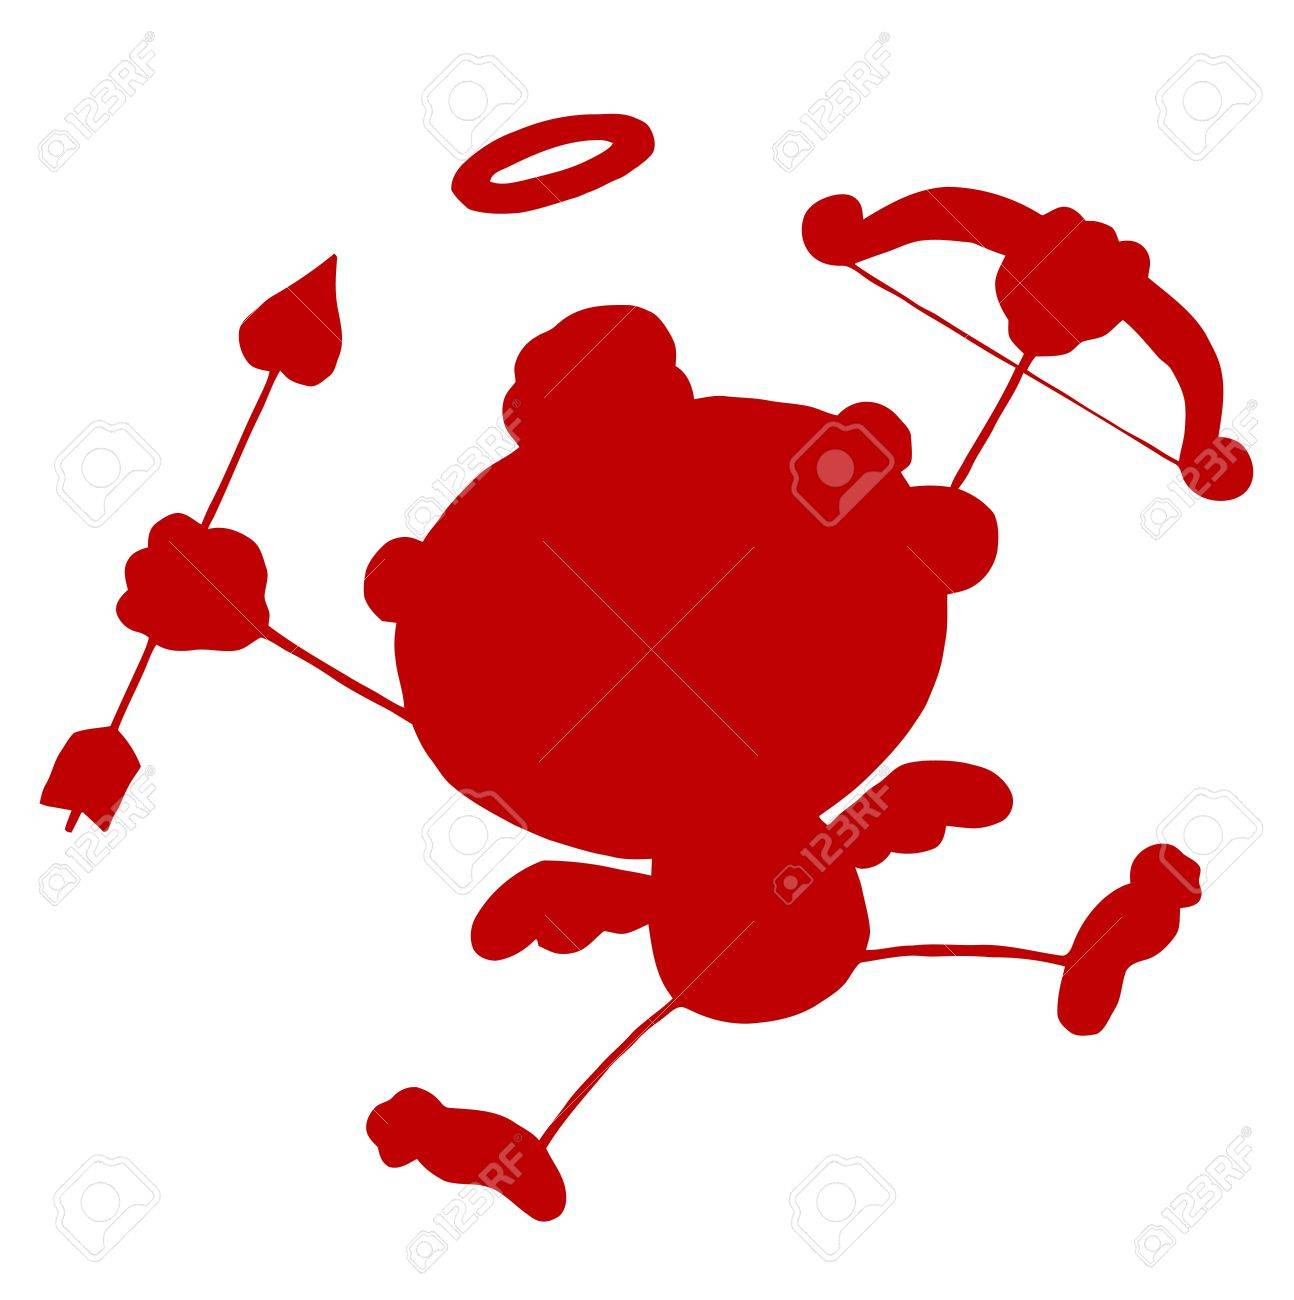 Red Stick Silhouette Cupid with Bow and Arrow Flying Stock Vector - 16511631